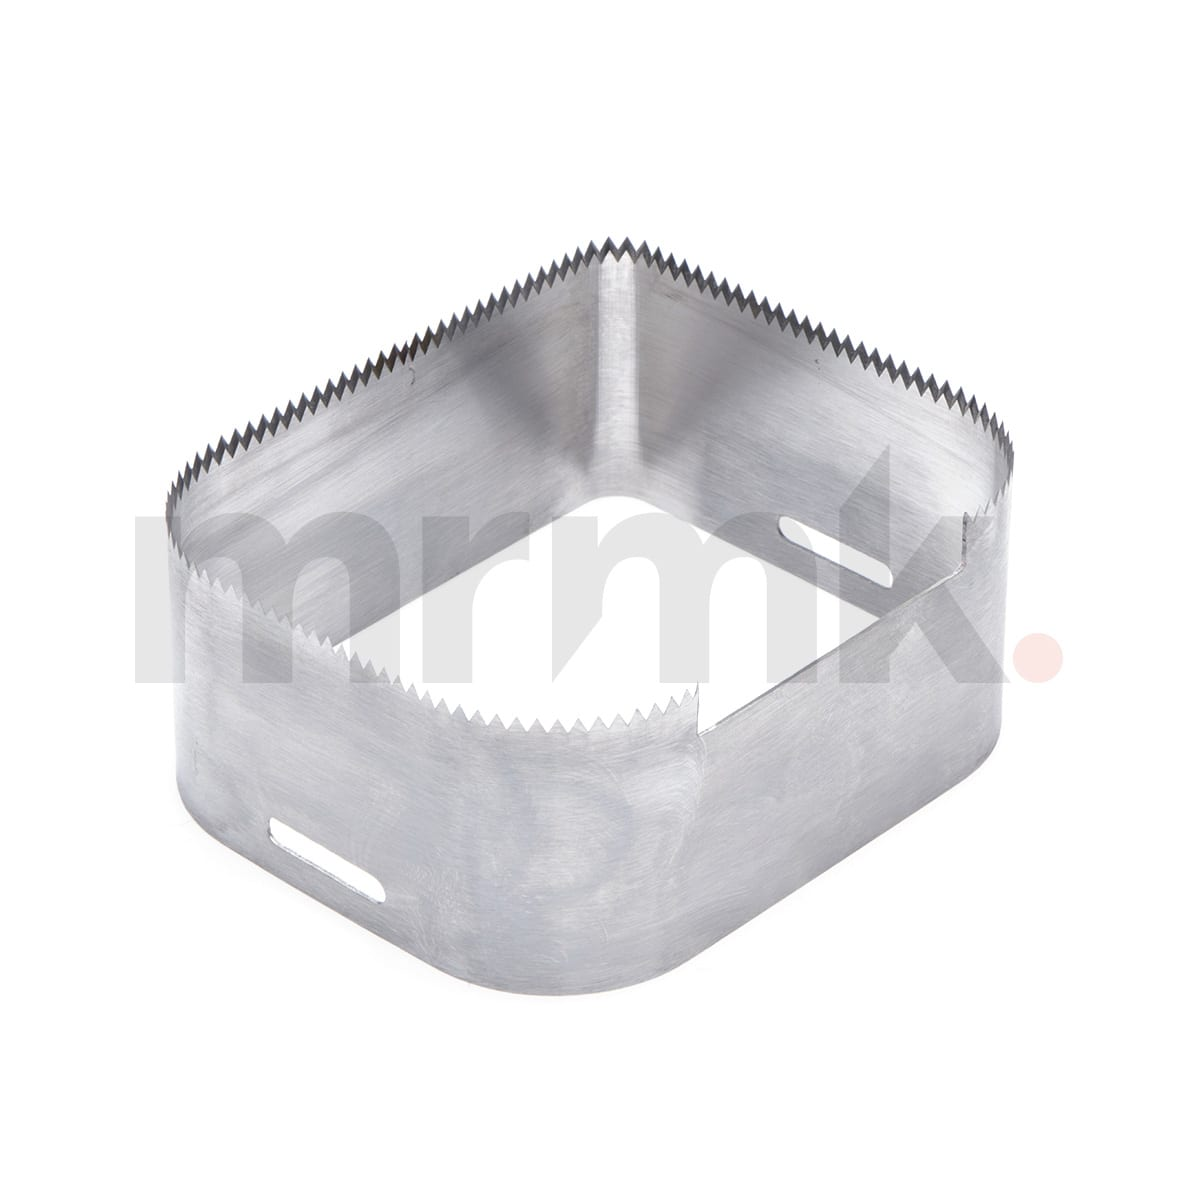 PA COMPATIBLE Tray Seal Knife